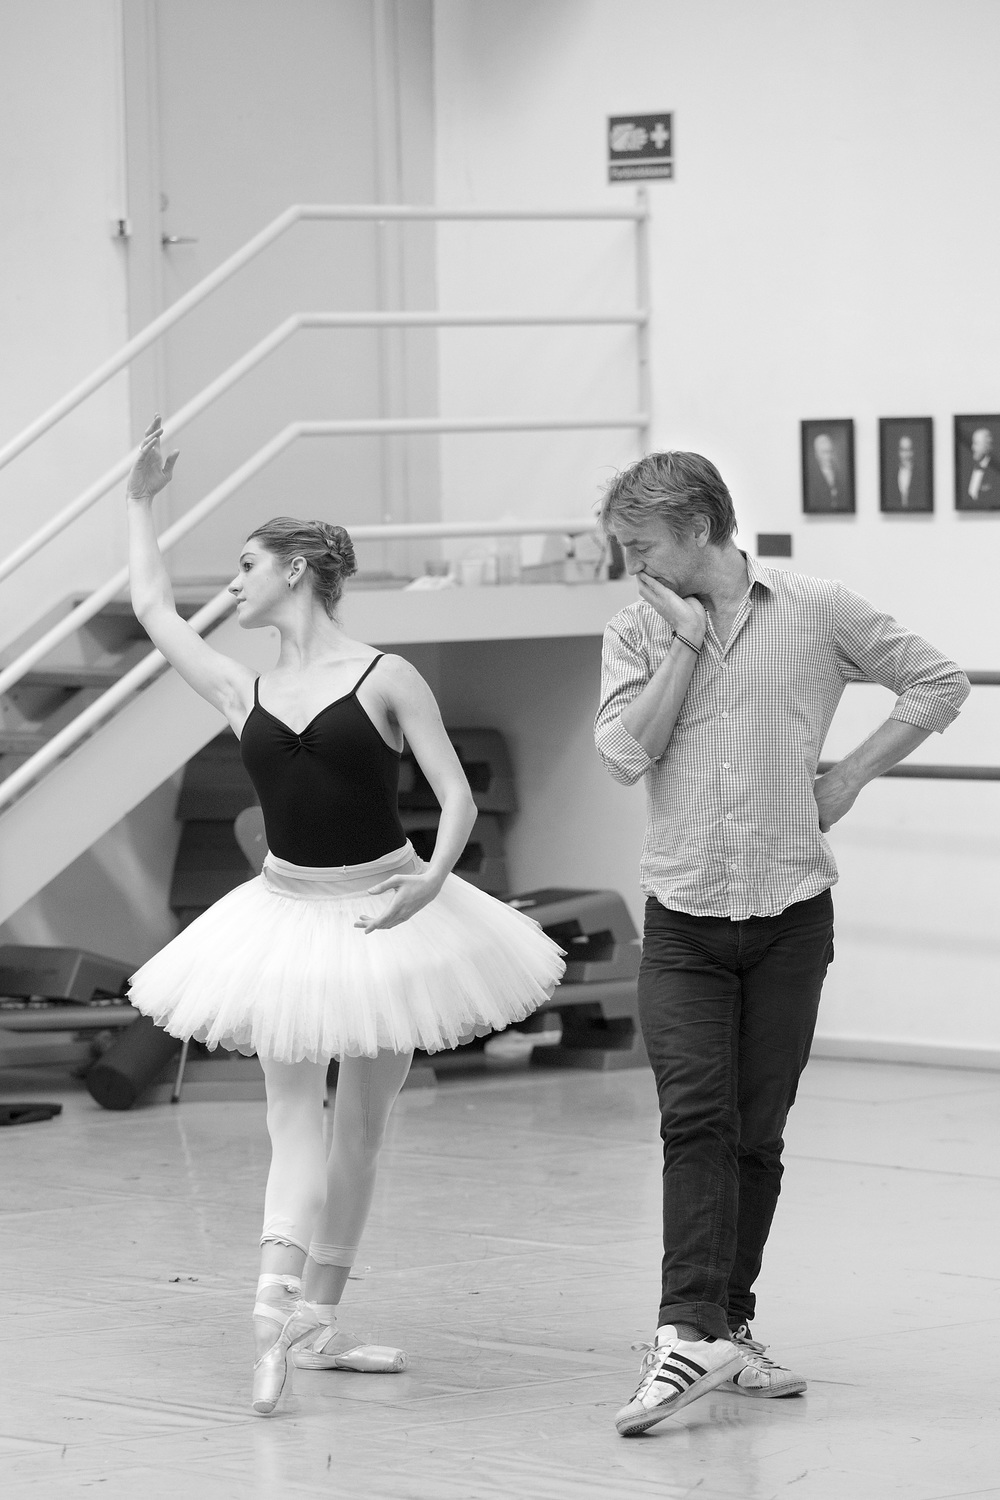 Nikolaj Hübbe is at the ballet from 8 am, until he gets home around 11 pm. There he listens to the music for the next day, and prepares the steps for the next days training.